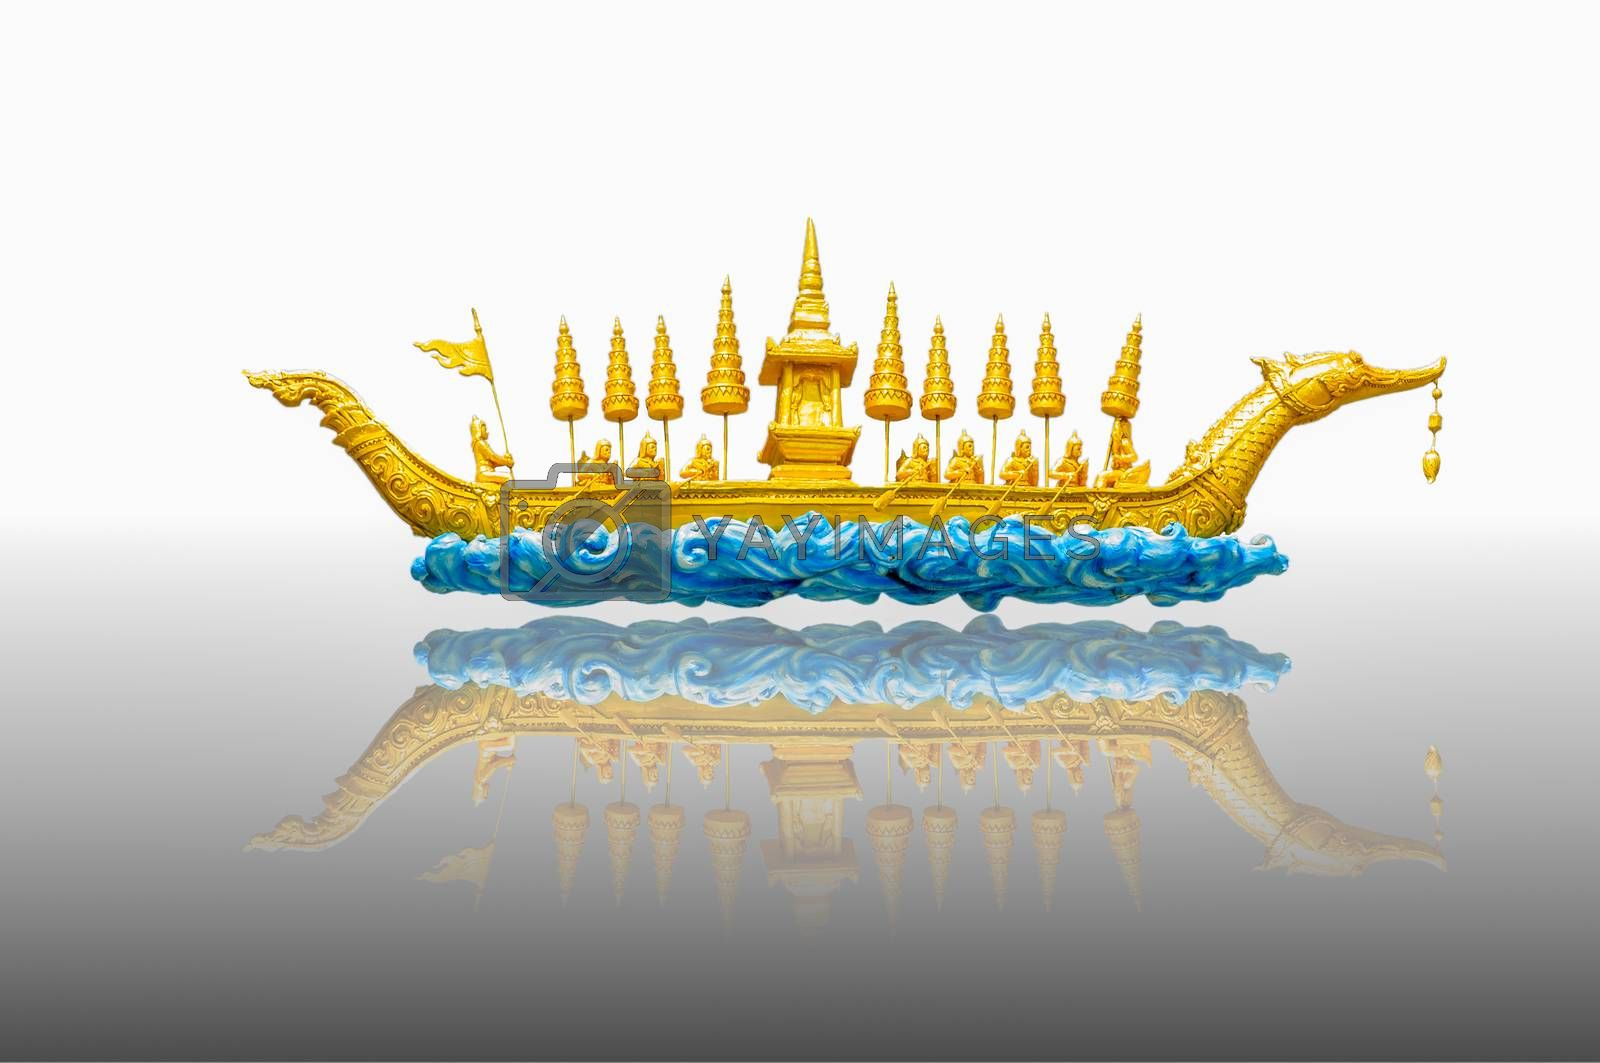 Royalty free image of The Arts and rowing competitions by Sorapop